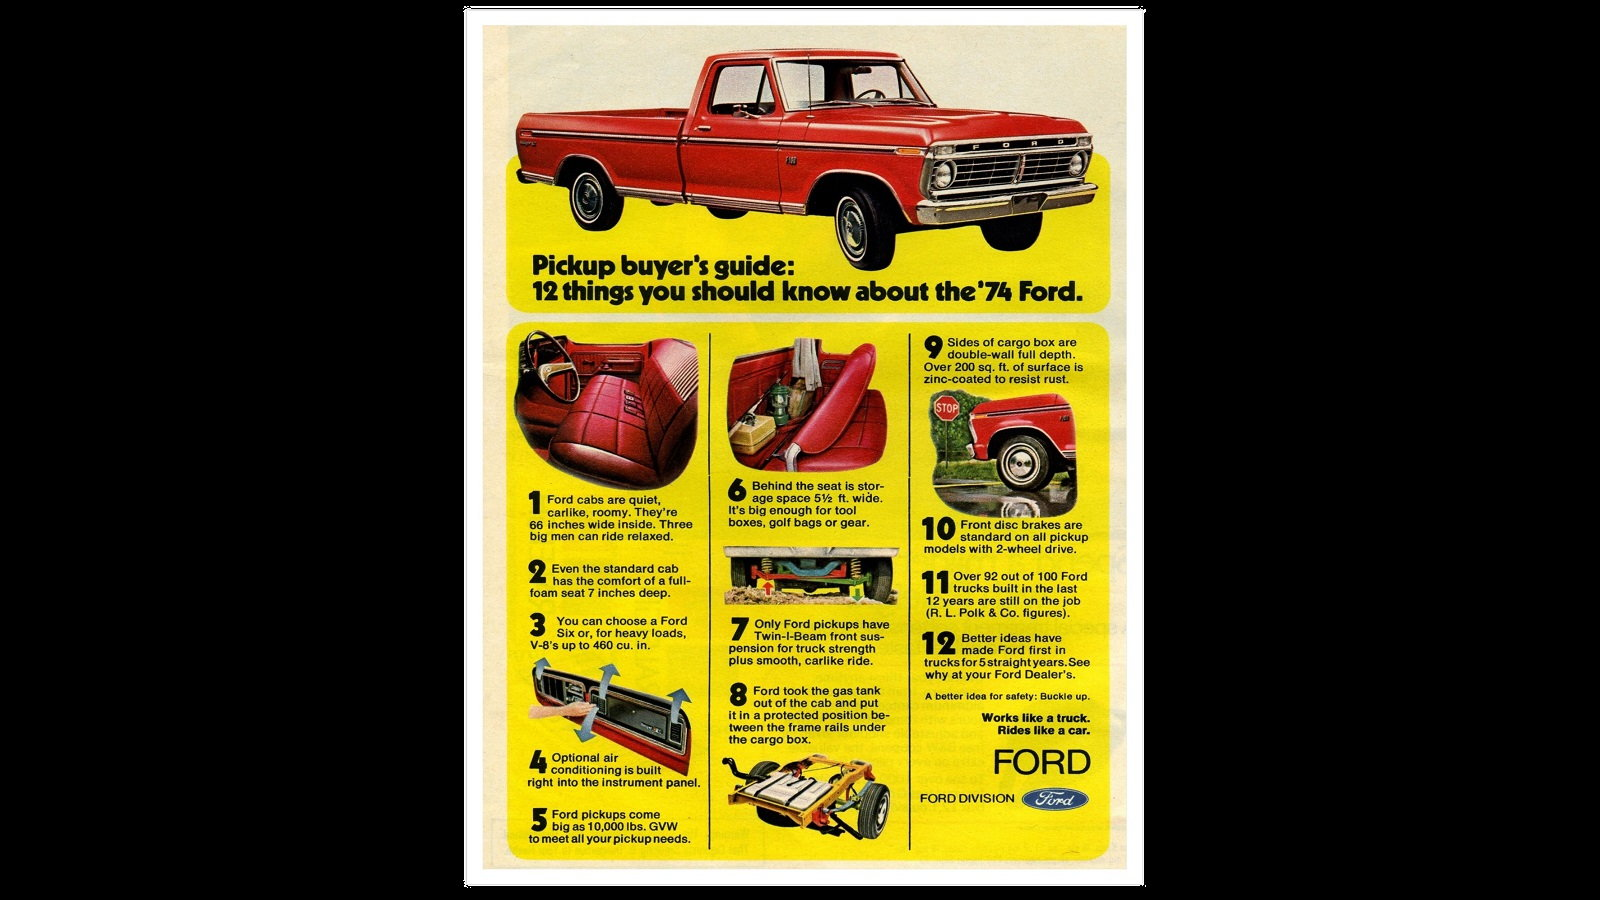 The 1974 Pickup Buyer's Guide